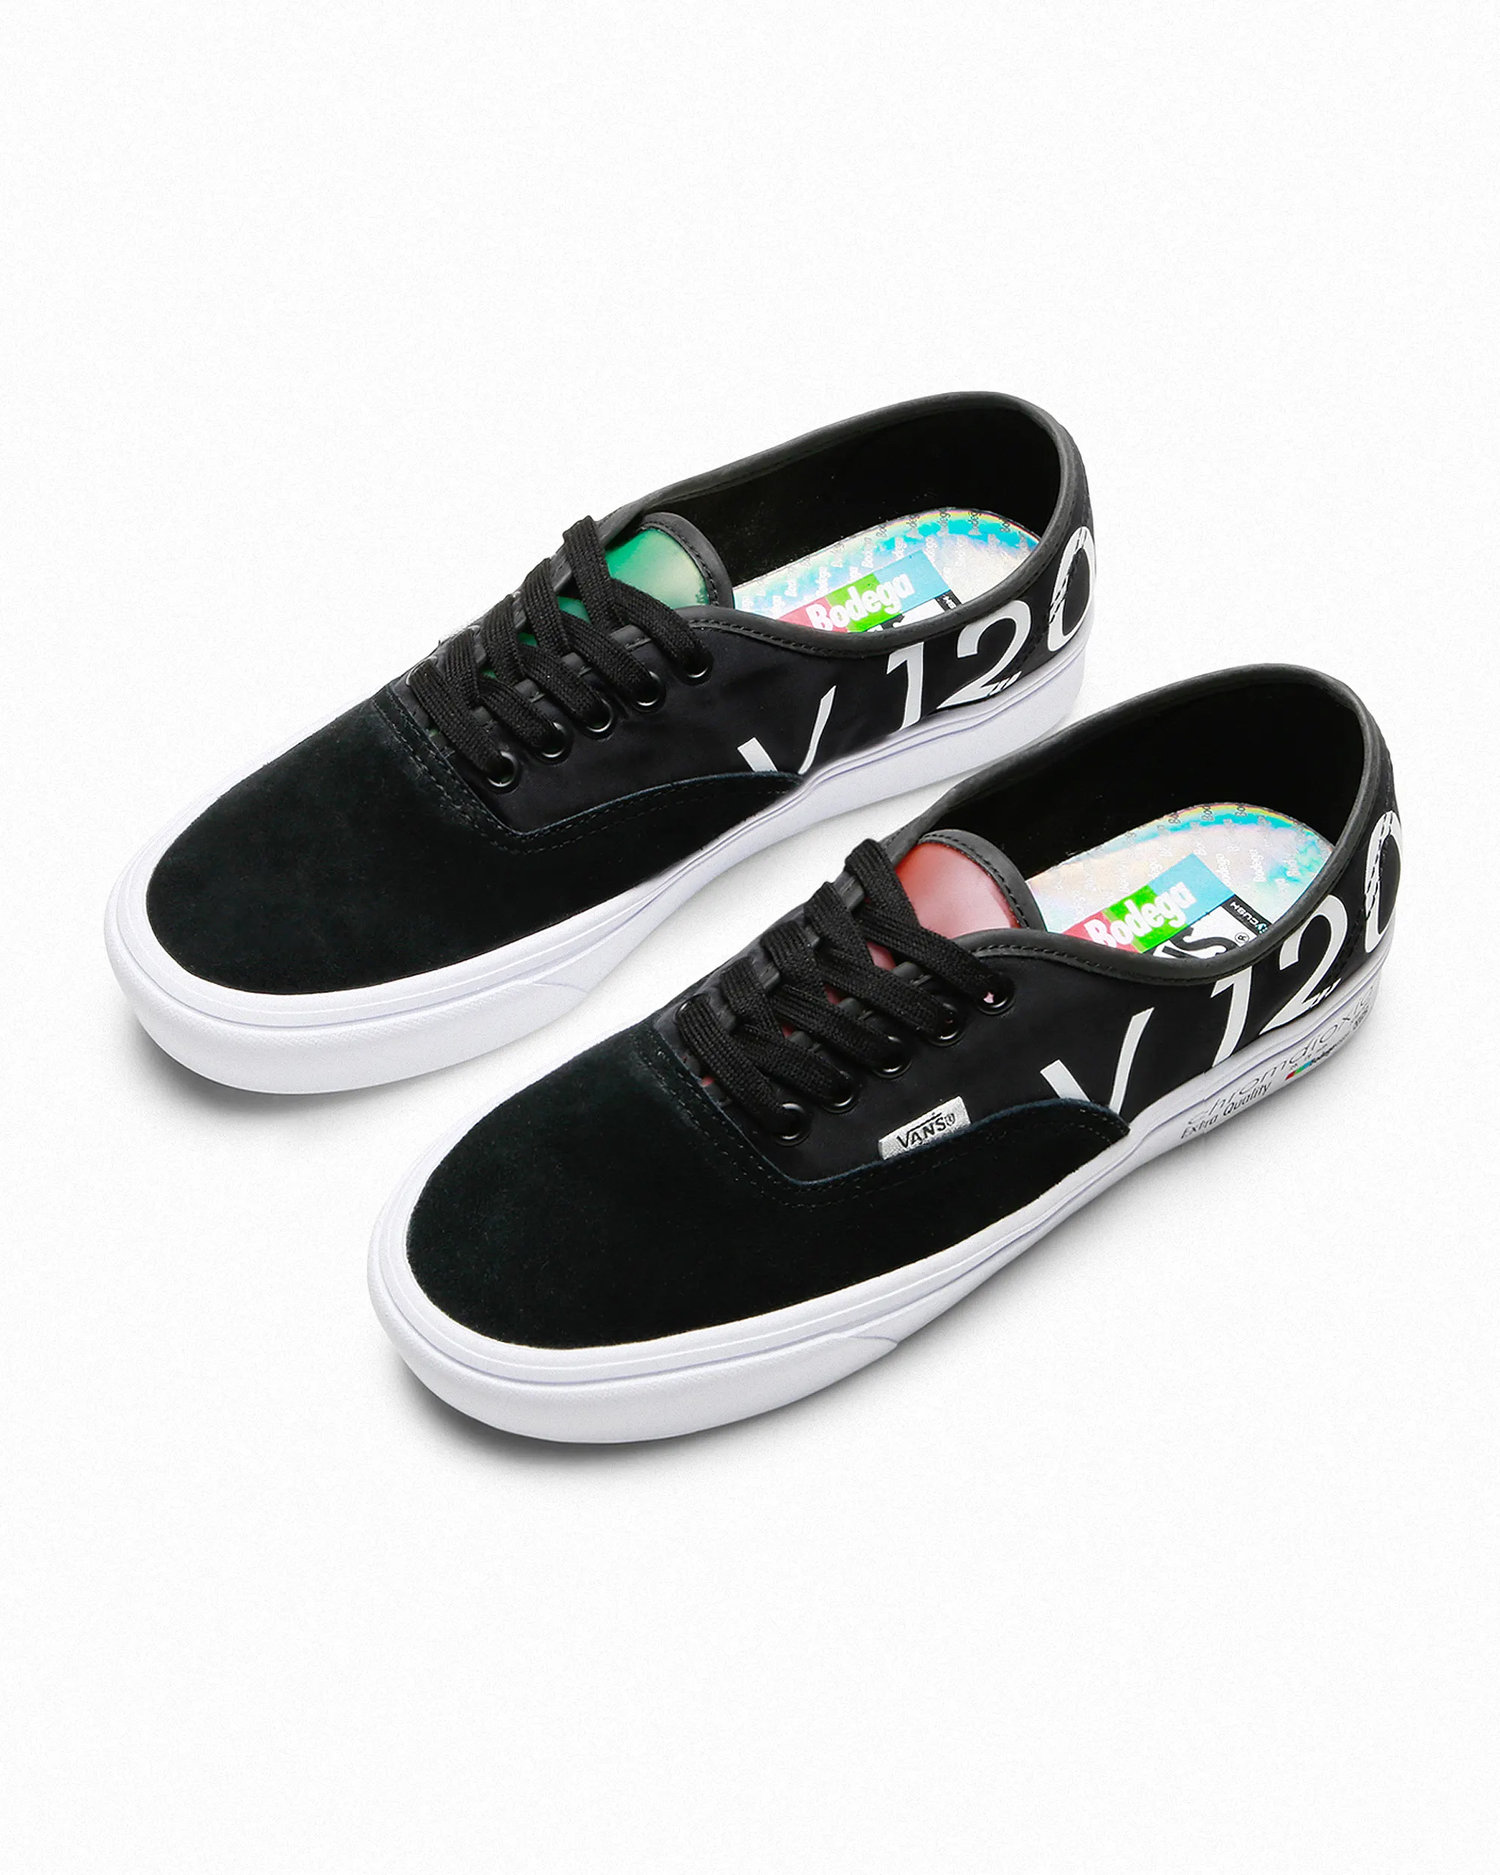 a86c14b6967 Vault by Vans x Bodega Authentic ComfyCush LX  Blank Tapes ...